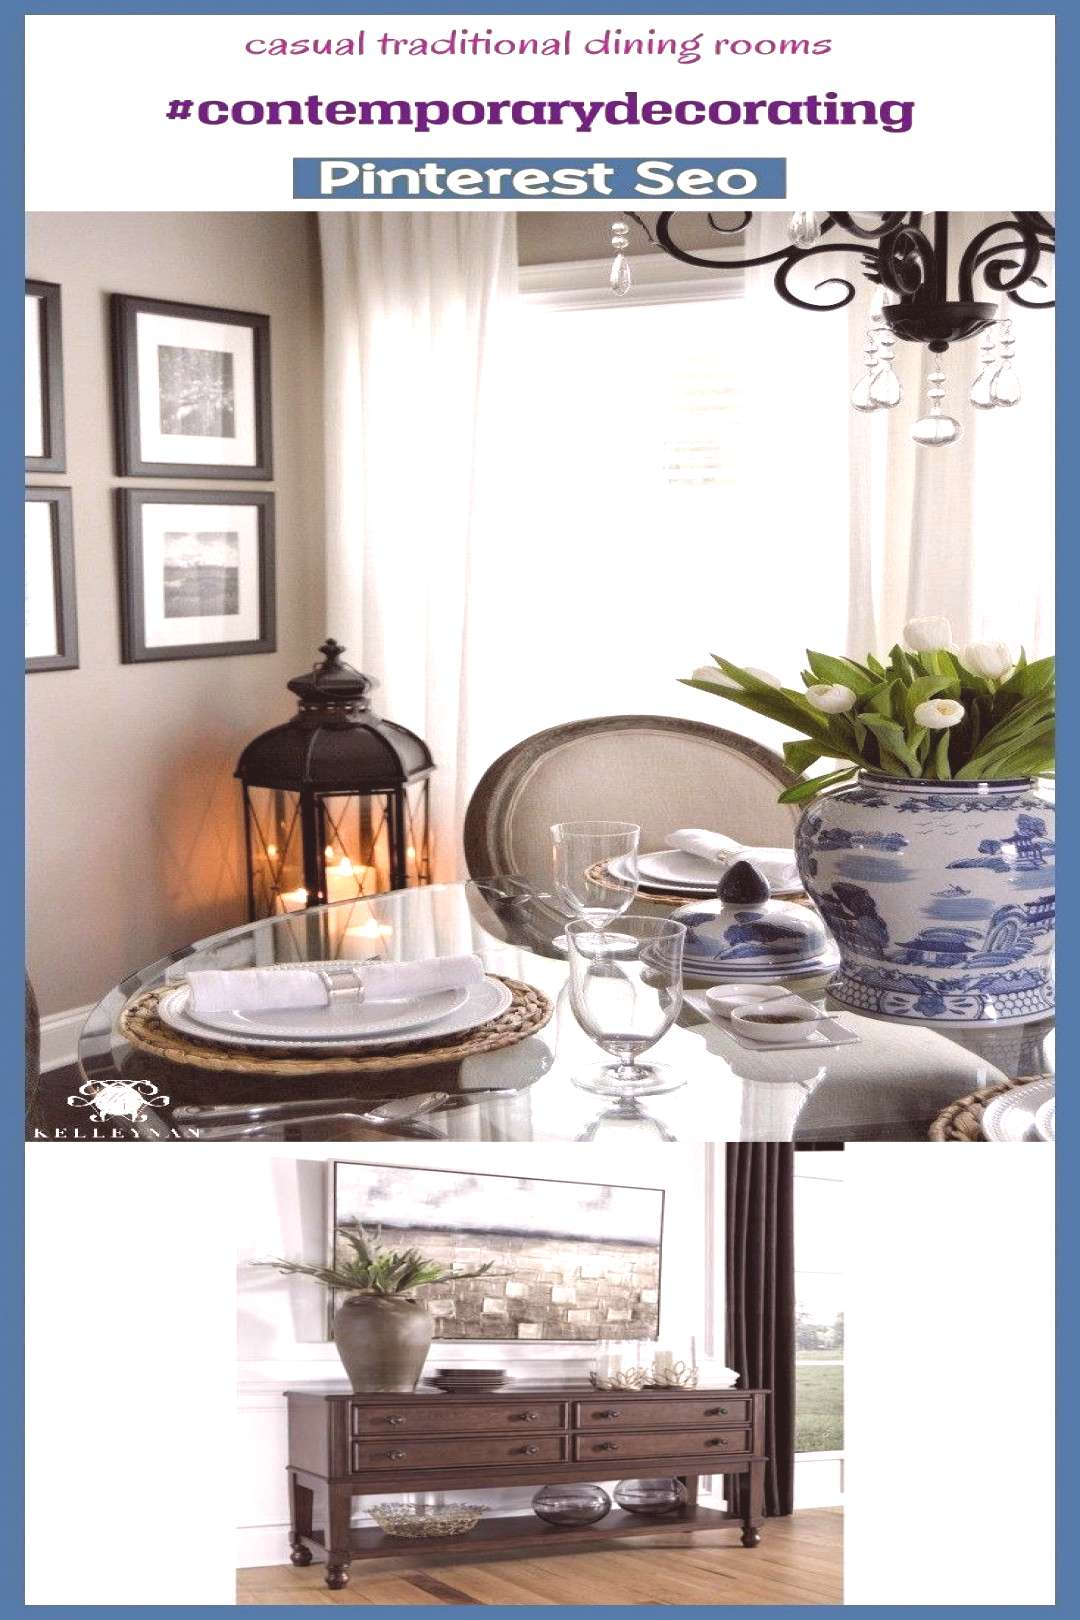 English country decor casual Traditional di...#casual